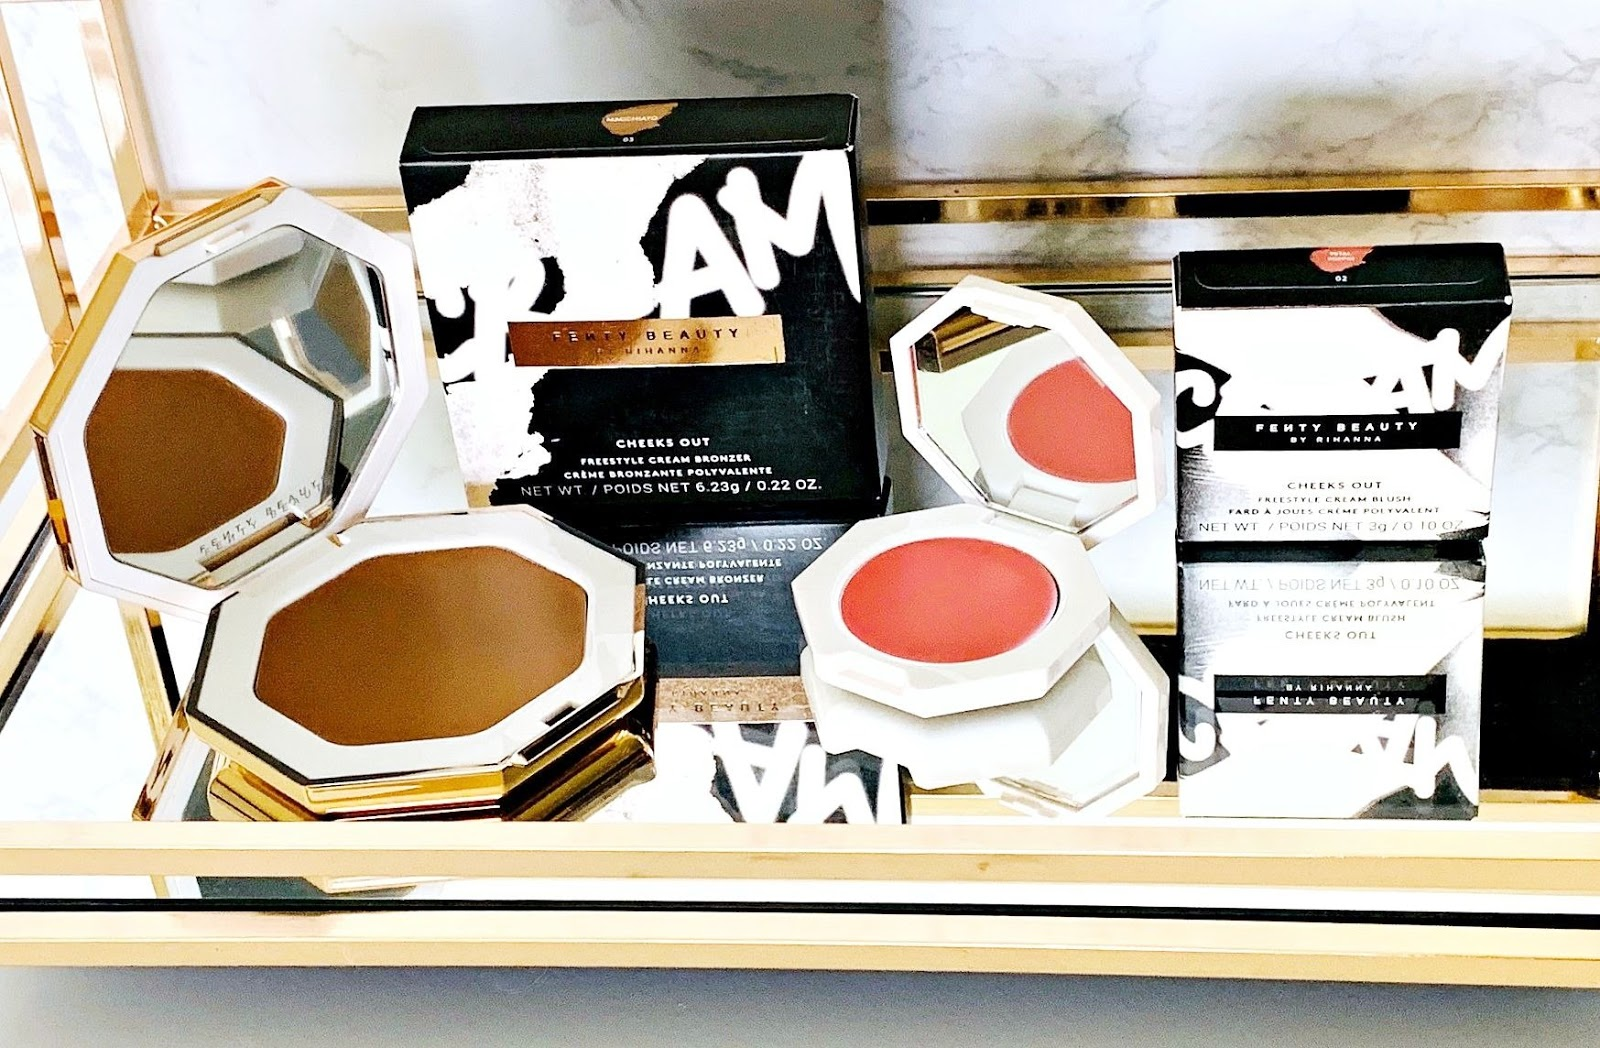 Fenty Beauty cream cheek products - worth the hype?